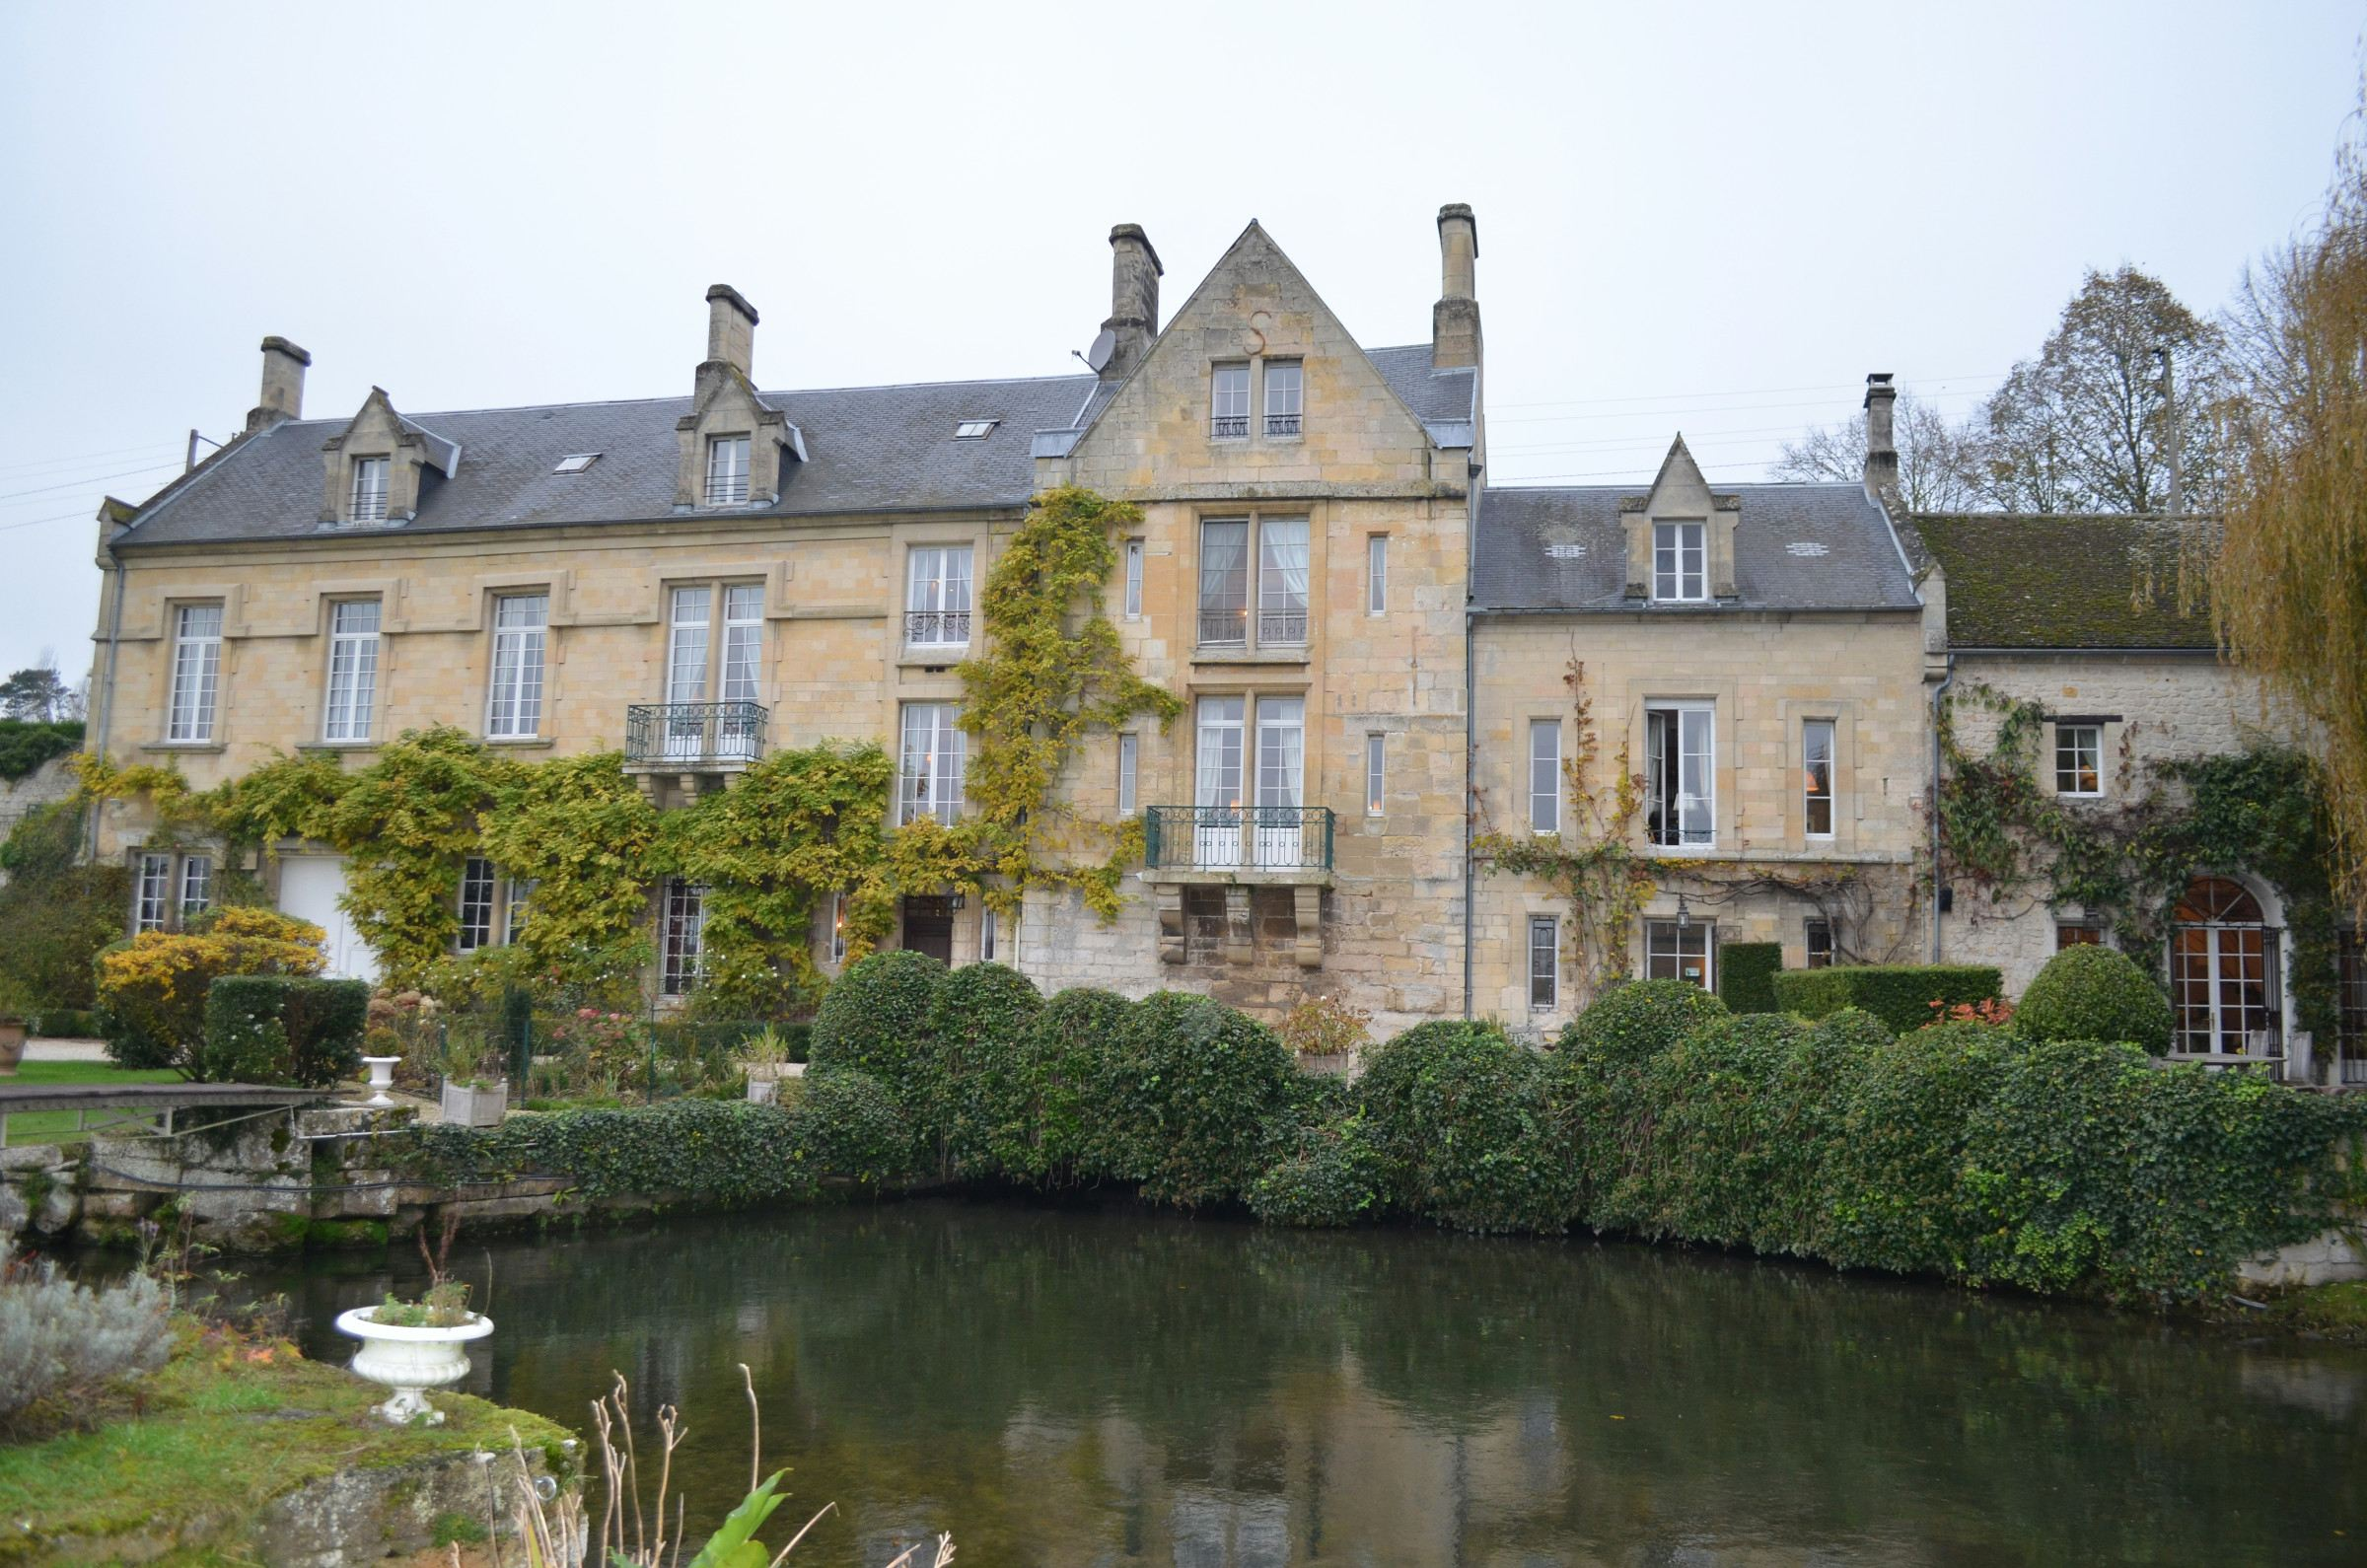 Single Family Home for Sale at CHANTILLY, Great Property 1 hour from Paris Other France, Other Areas In France 60270 France